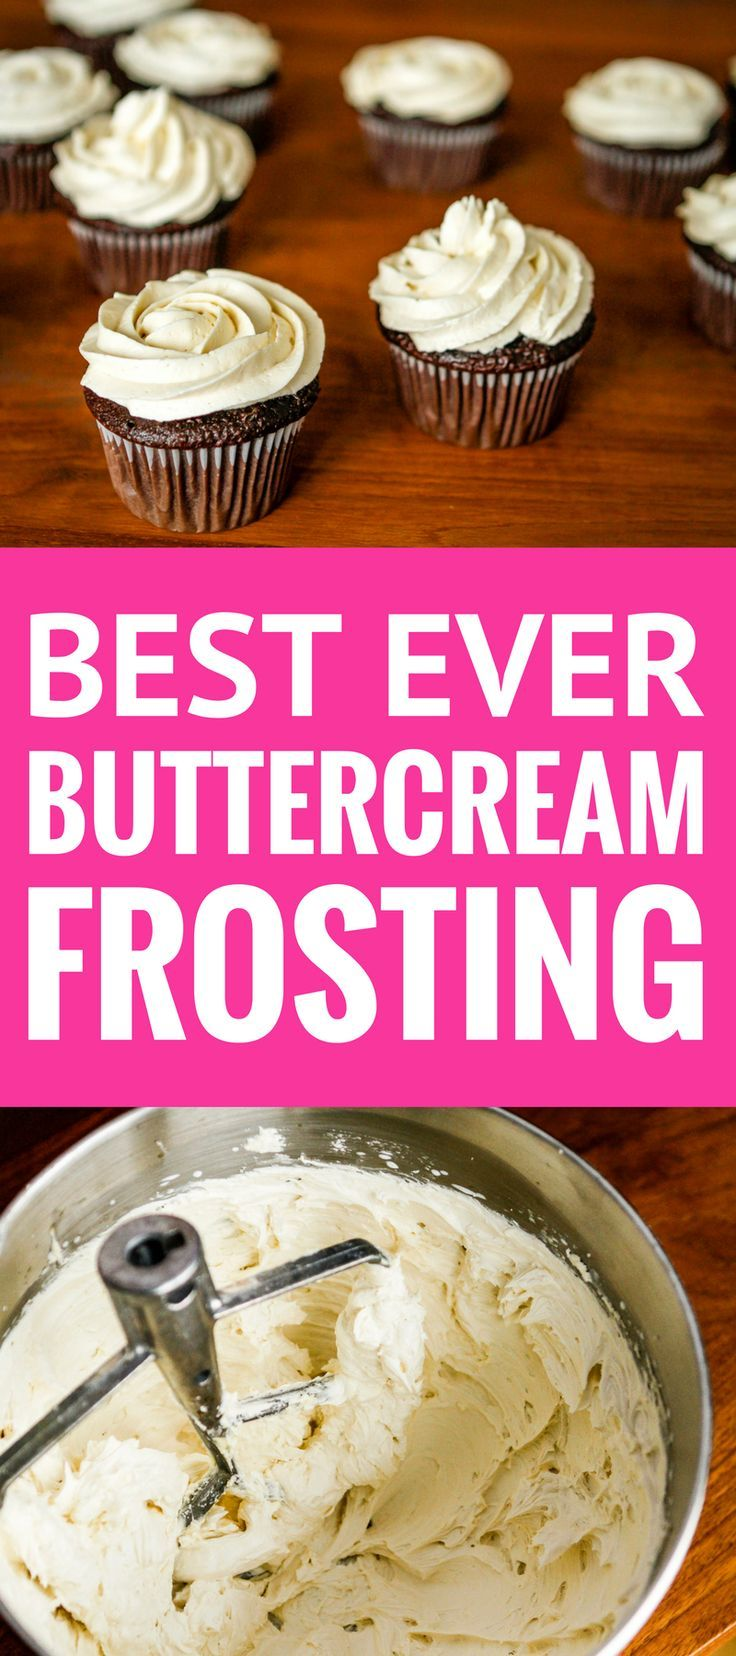 Best Buttercream Frosting Recipe -- super creamy and fluffy, not too sweet, this is quite possibly the BEST buttercream frosting recipe ever... A must try! | vanilla buttercream frosting | homemade buttercream frosting | whipped cream frosting recipe | powdered sugar icing recipe | fluffy buttercream frosting | find the recipe on unsophisticook.com #buttercream #buttercreamfrosting #bestbuttercream